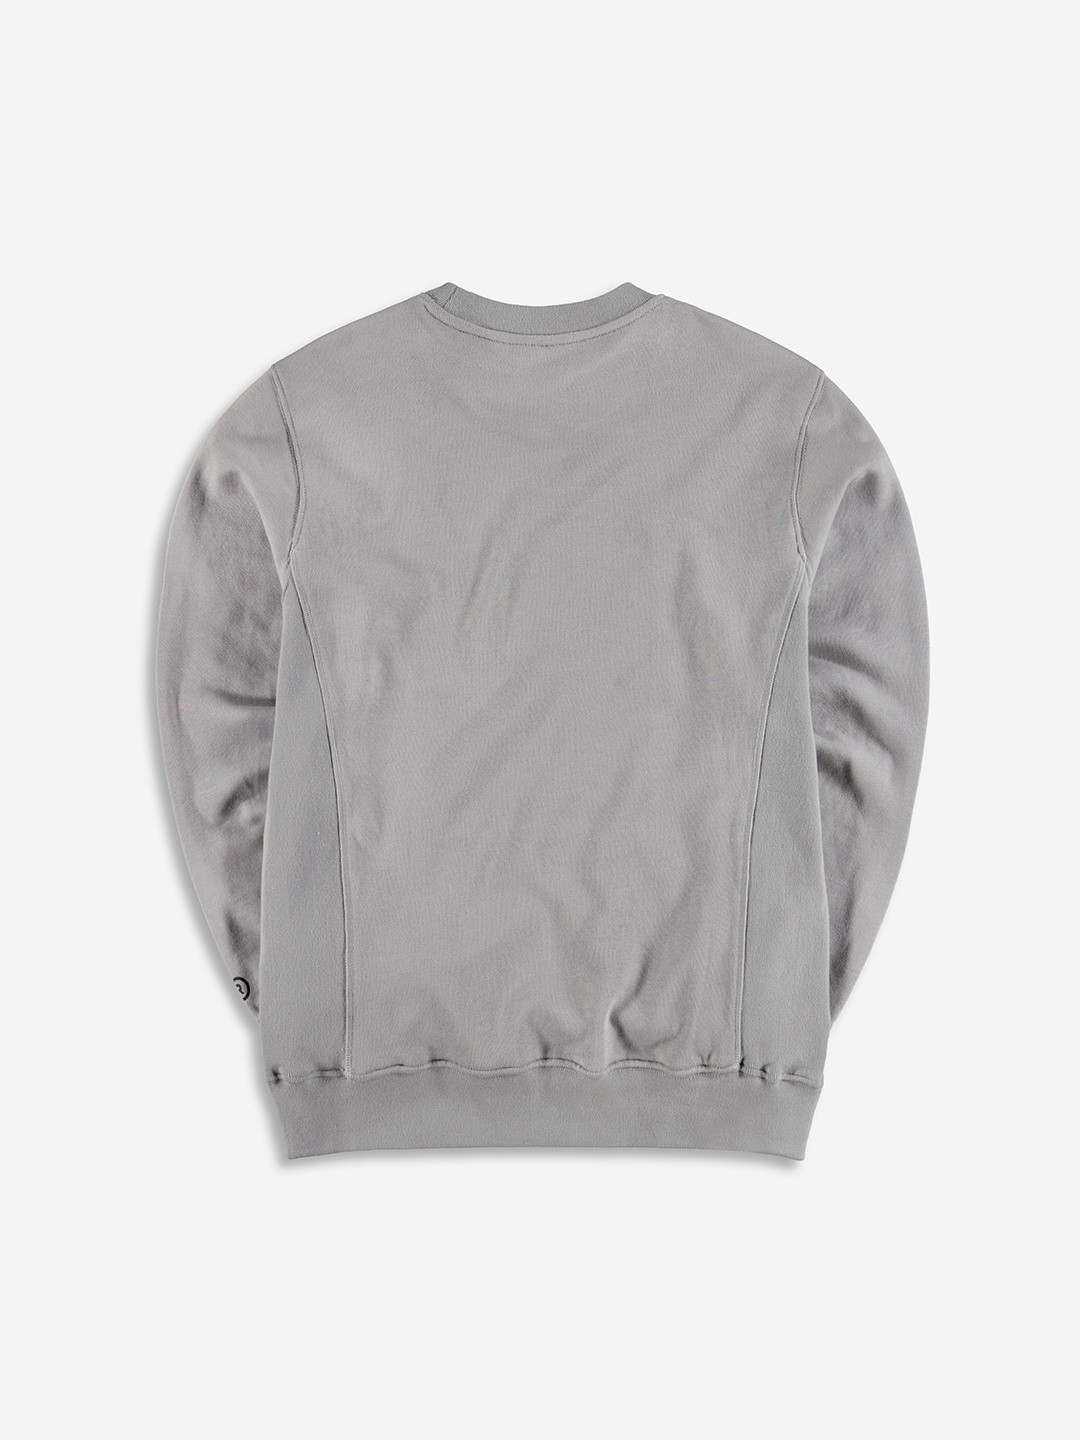 TXT SWEATER GREY